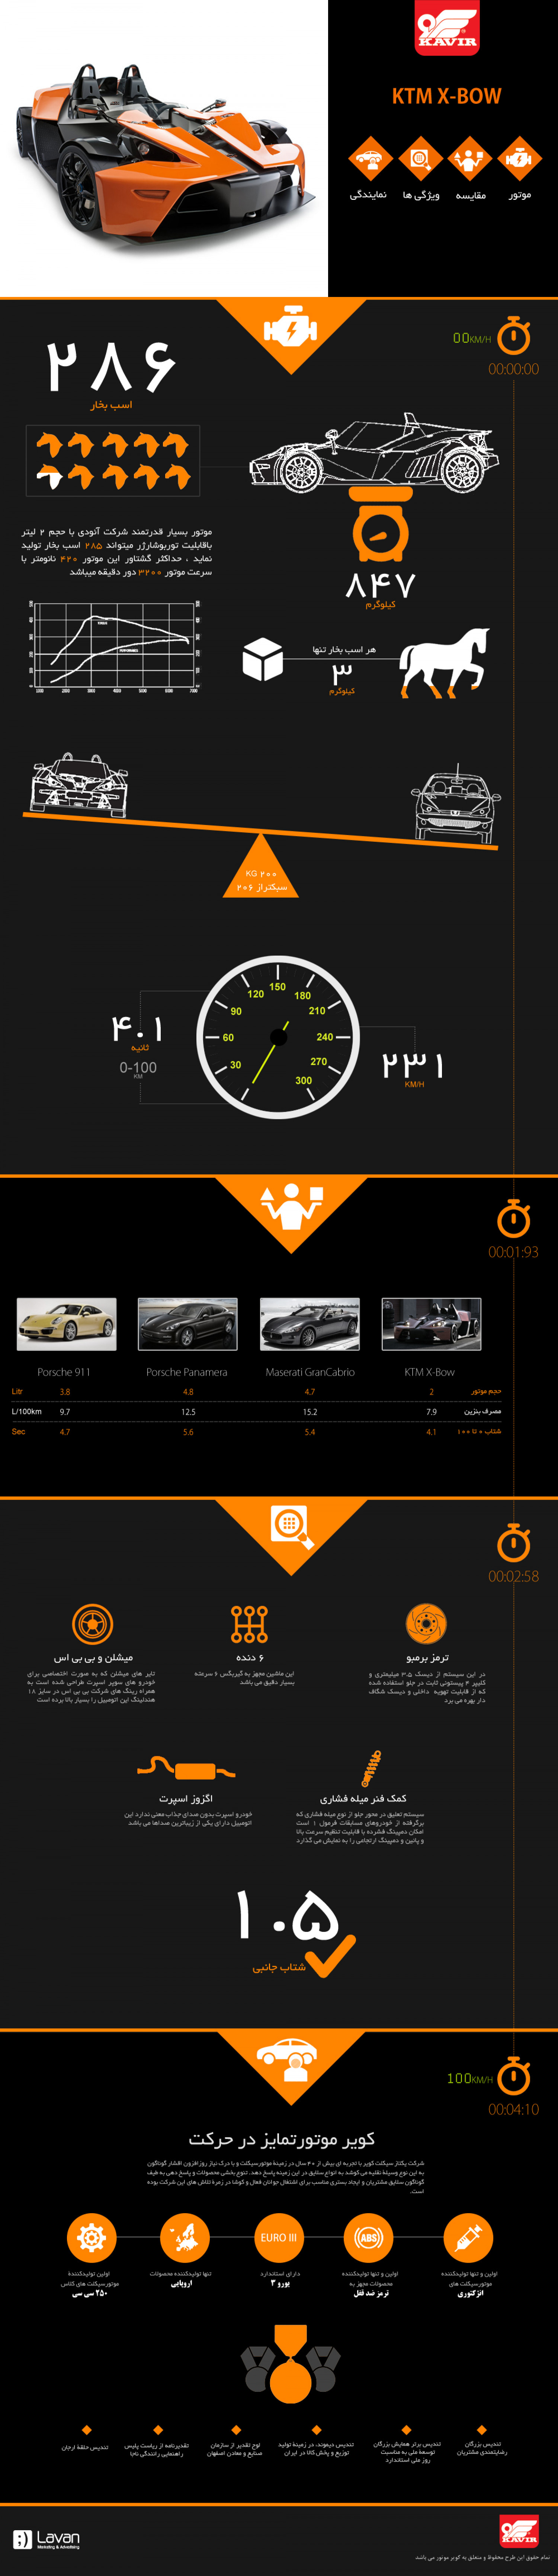 KTM X-BOW Infographic